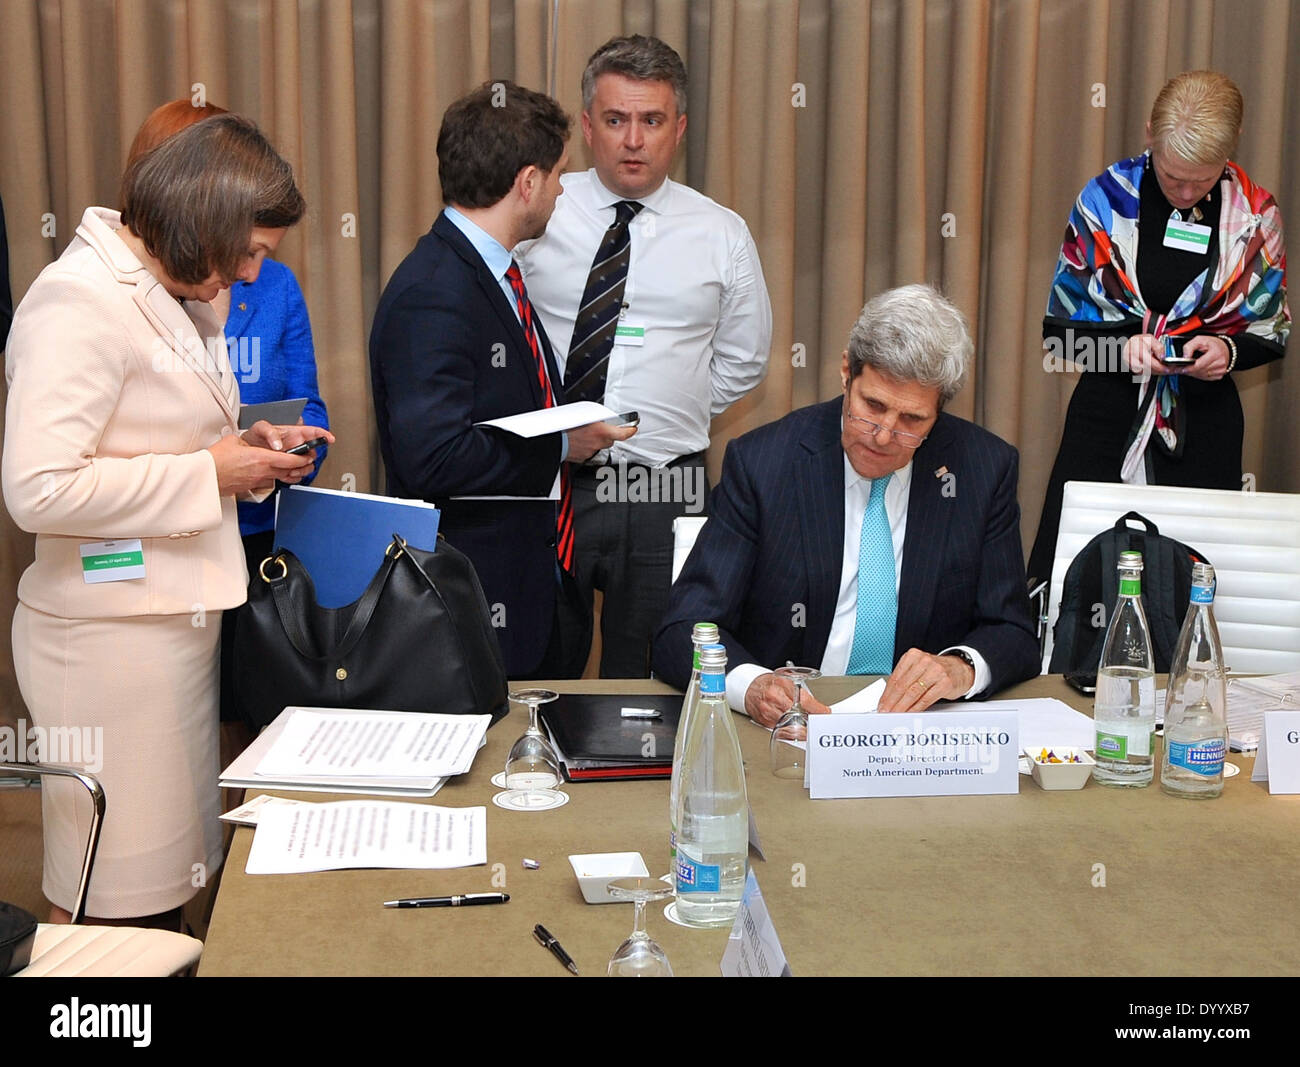 Secretary Kerry Puts Final Touches on Remarks Before News Conference in Geneva - Stock Image